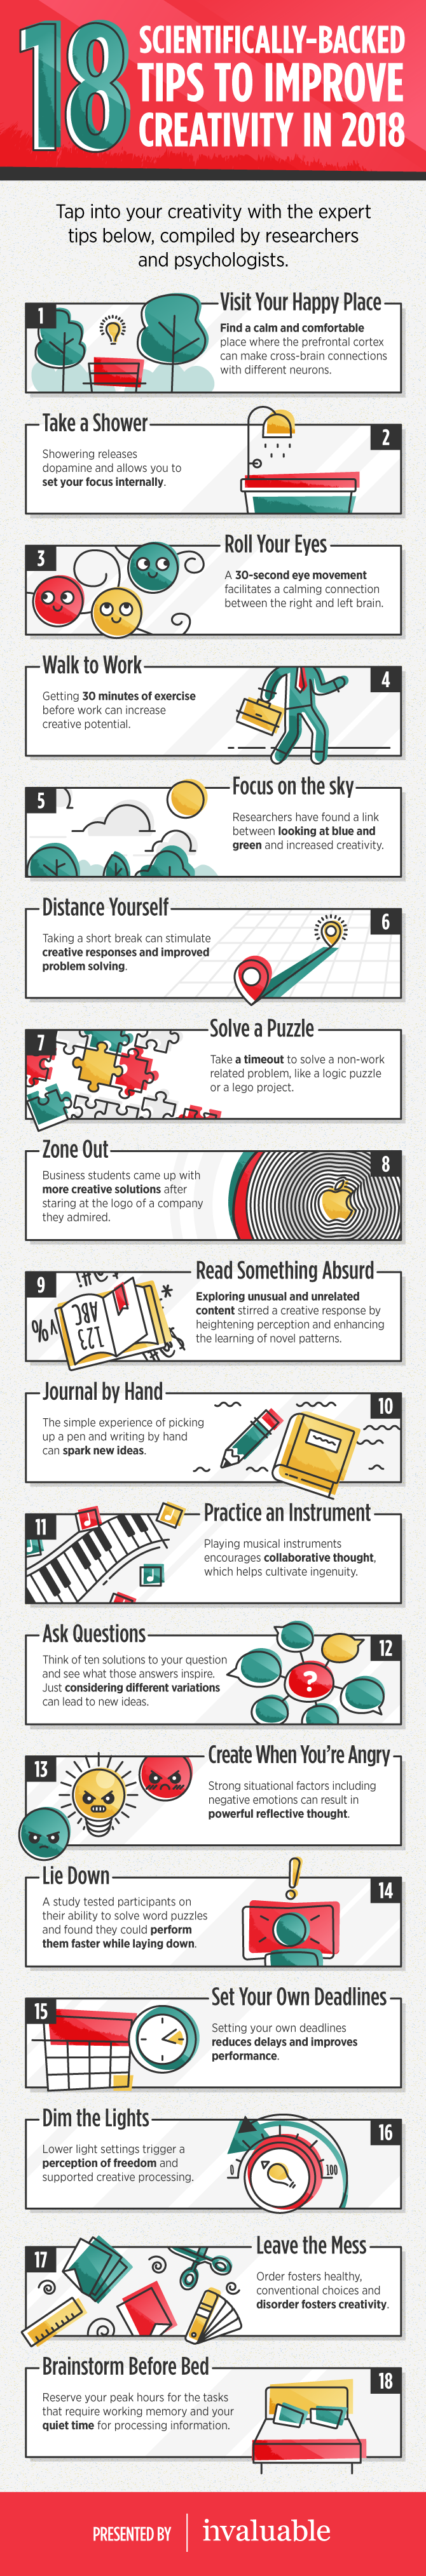 Improve Your Creativity: 18 Science-Backed Tips - Infographic